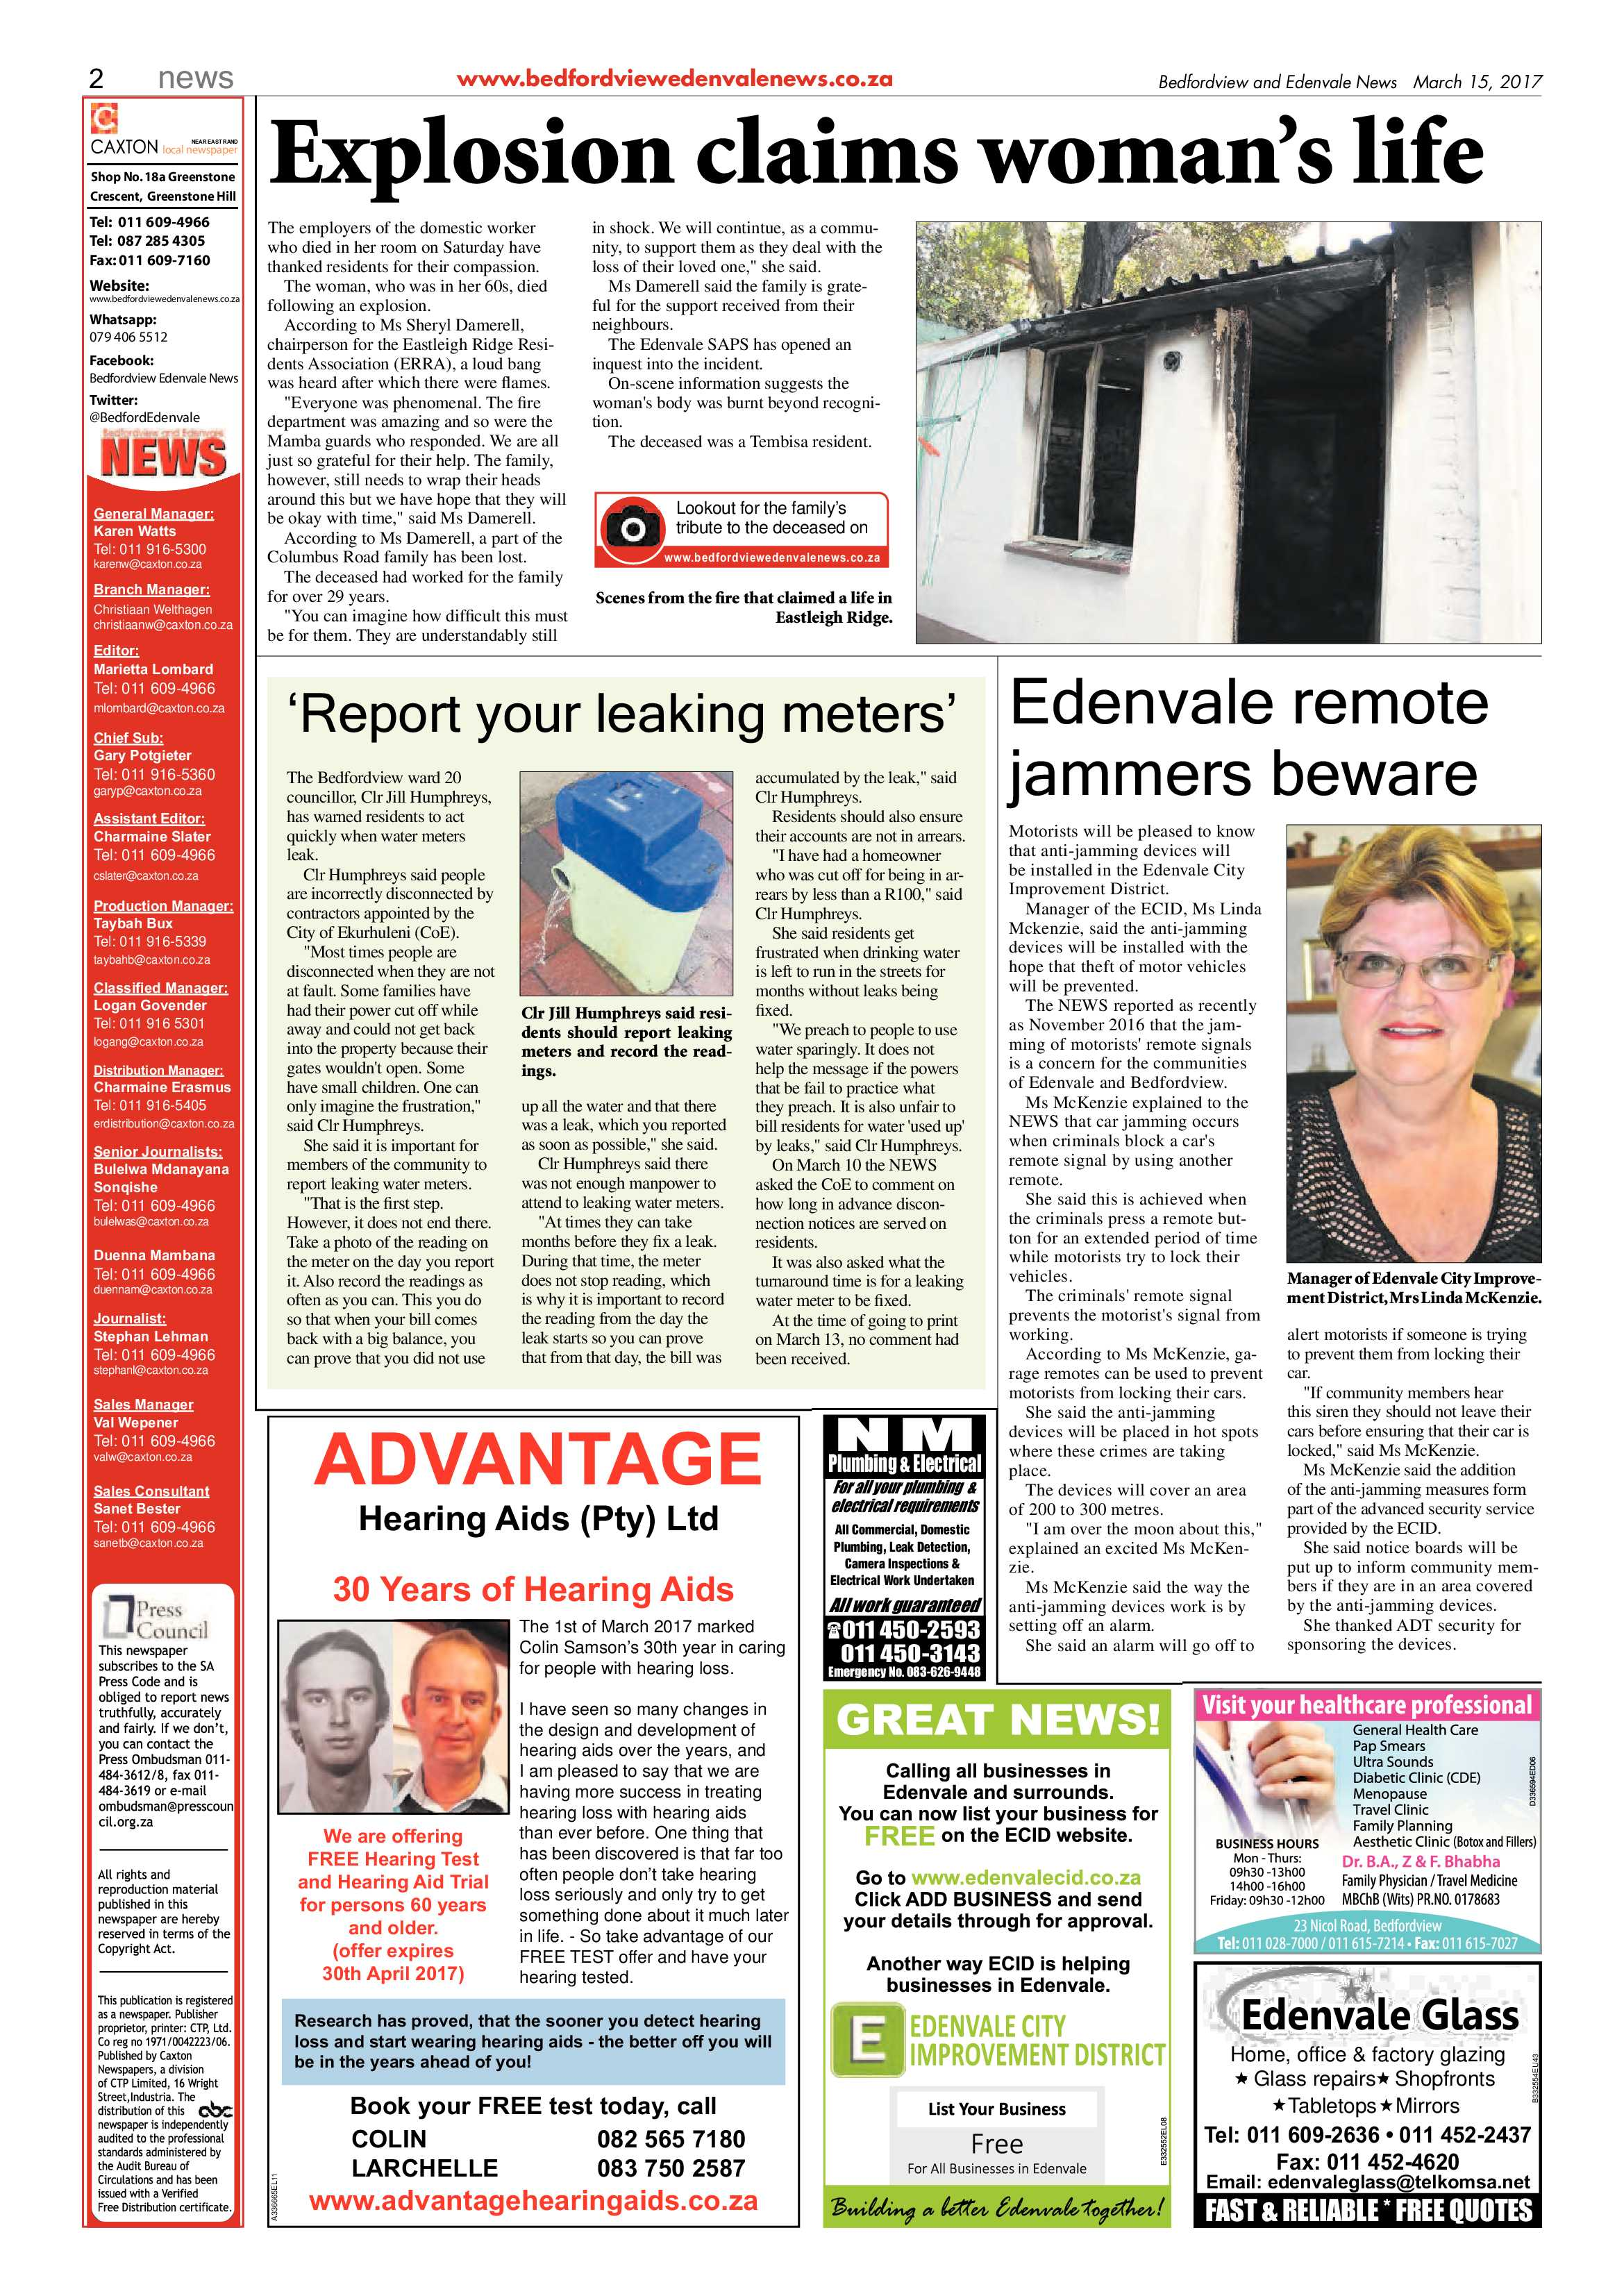 bedfordview-edenvale-news-15-march-2017-epapers-page-2